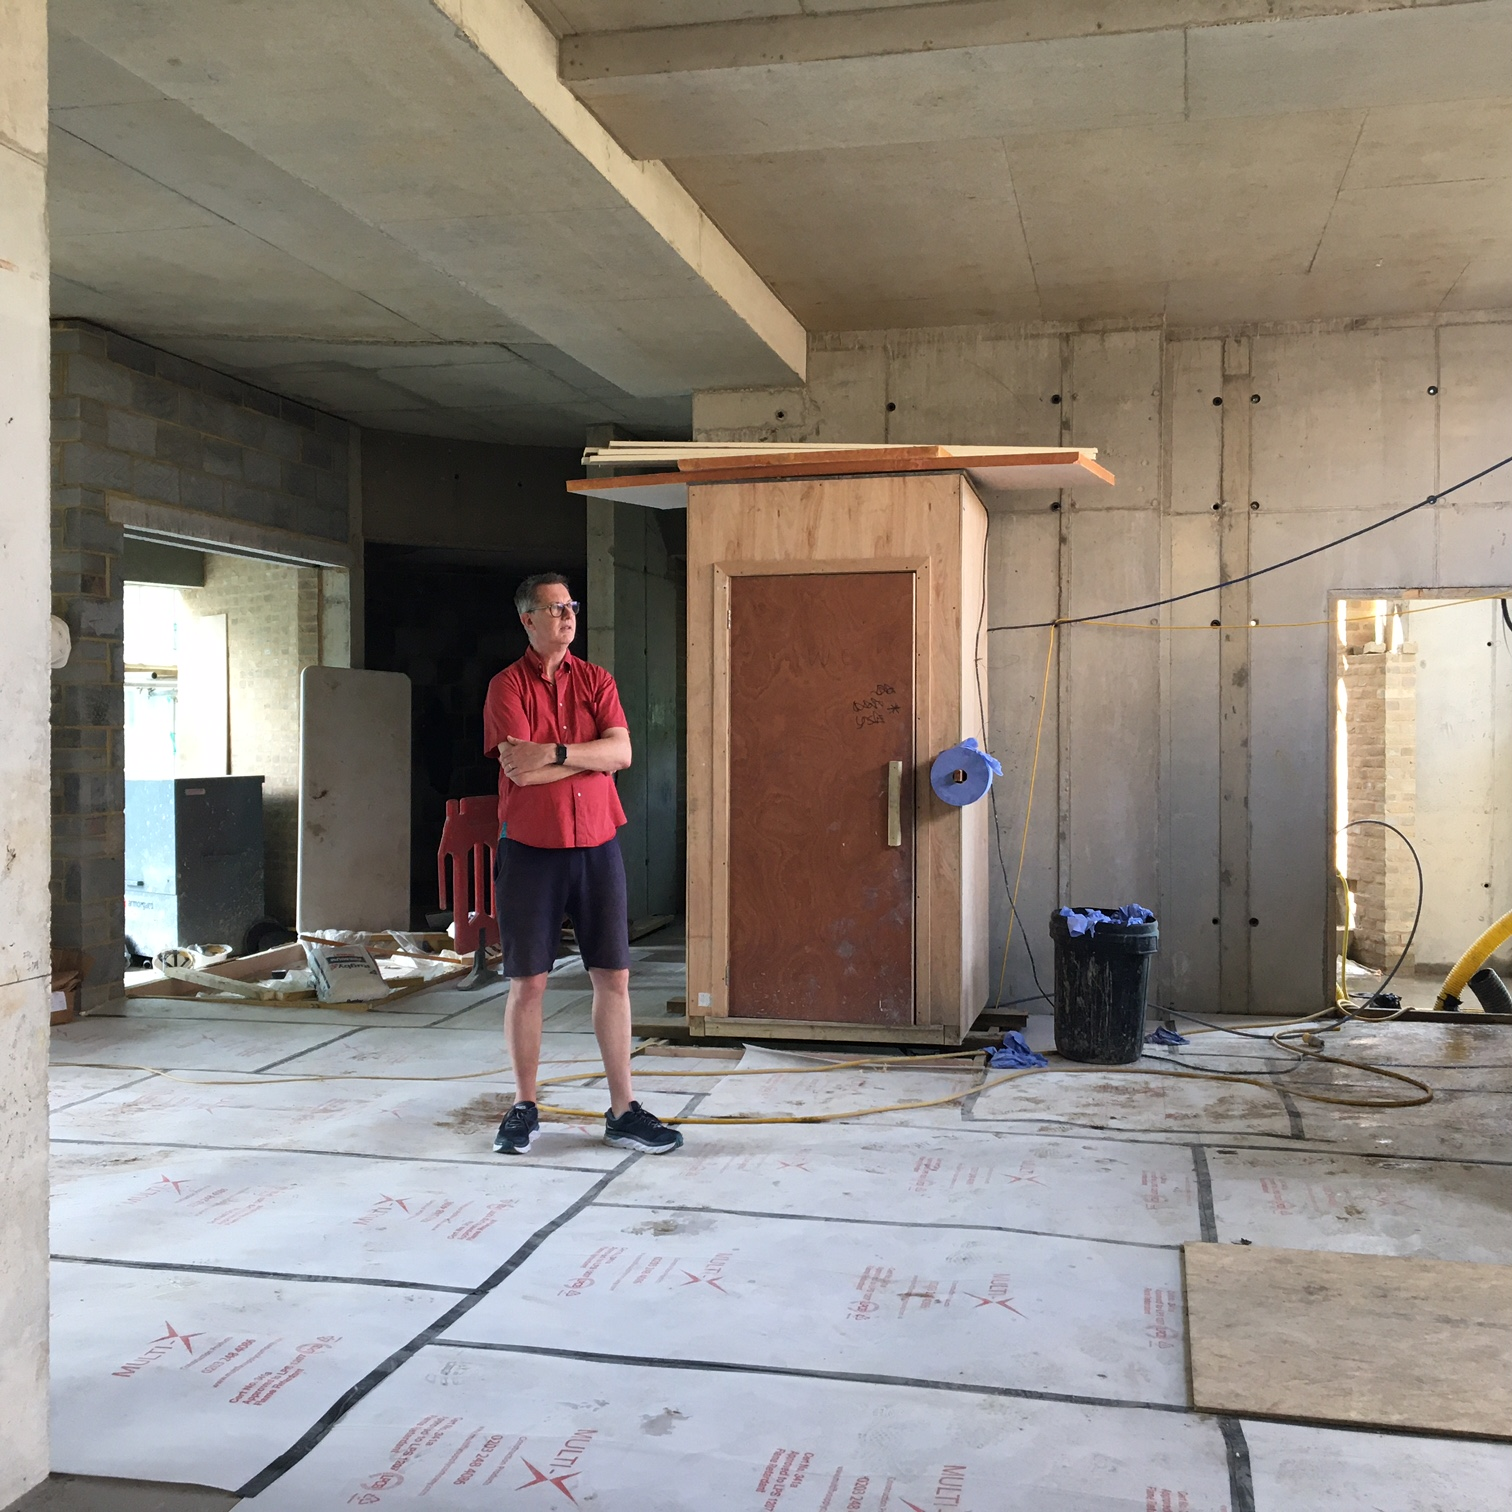 Andrew who is almost 2 metres tall stands in the main space of the building. The ceiling is far above his head and there is lots of space around him. The walls are still concrete and the floor is covered in a protective plastic sheeting.